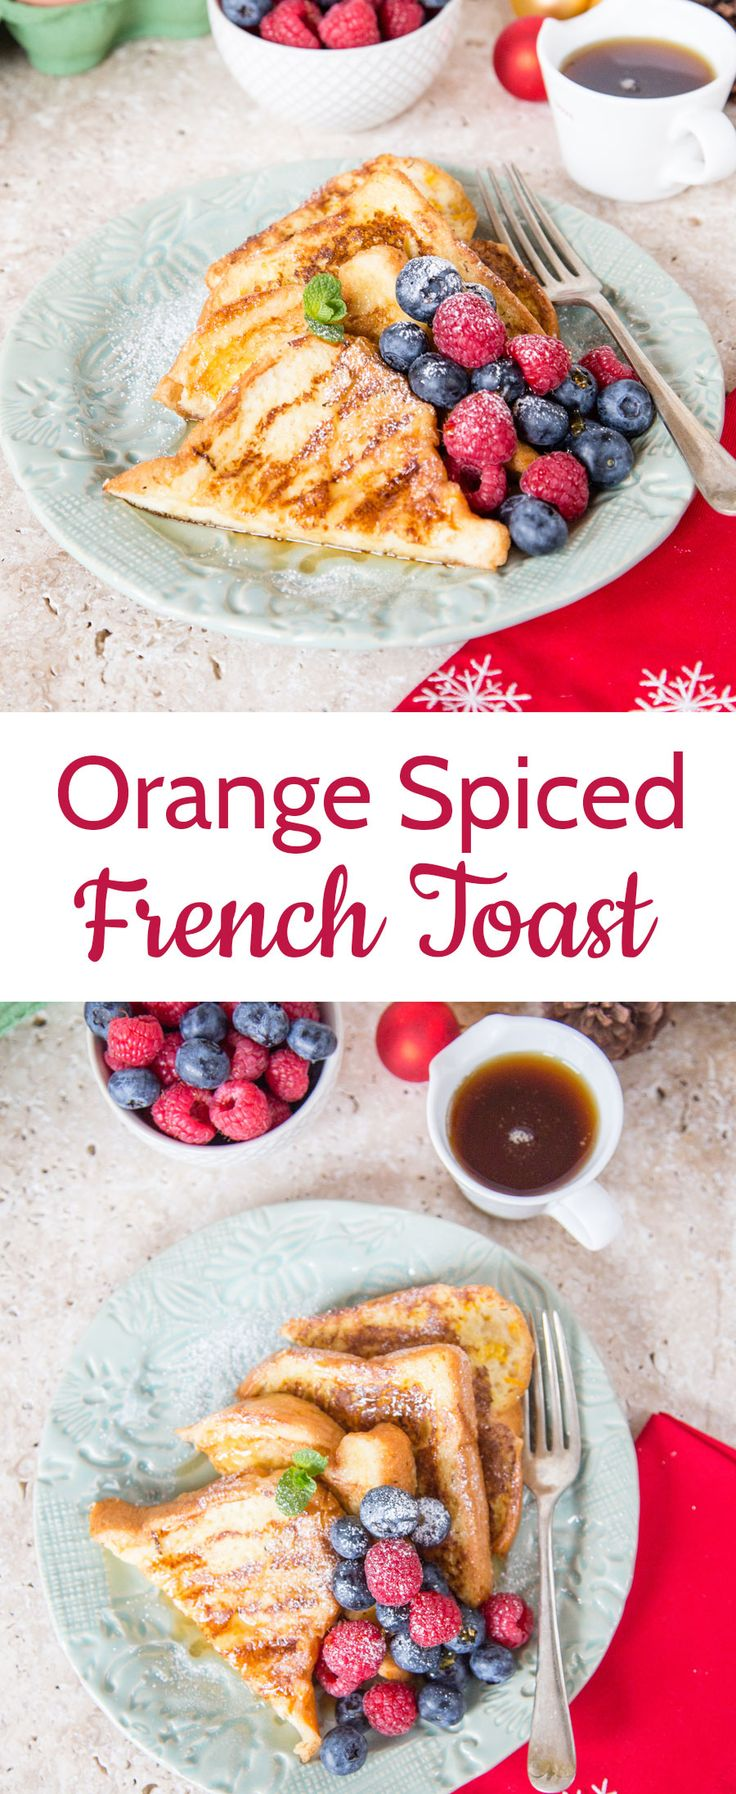 This lightly spiced French toast is flavoured with orange and is perfect for a festive brunch